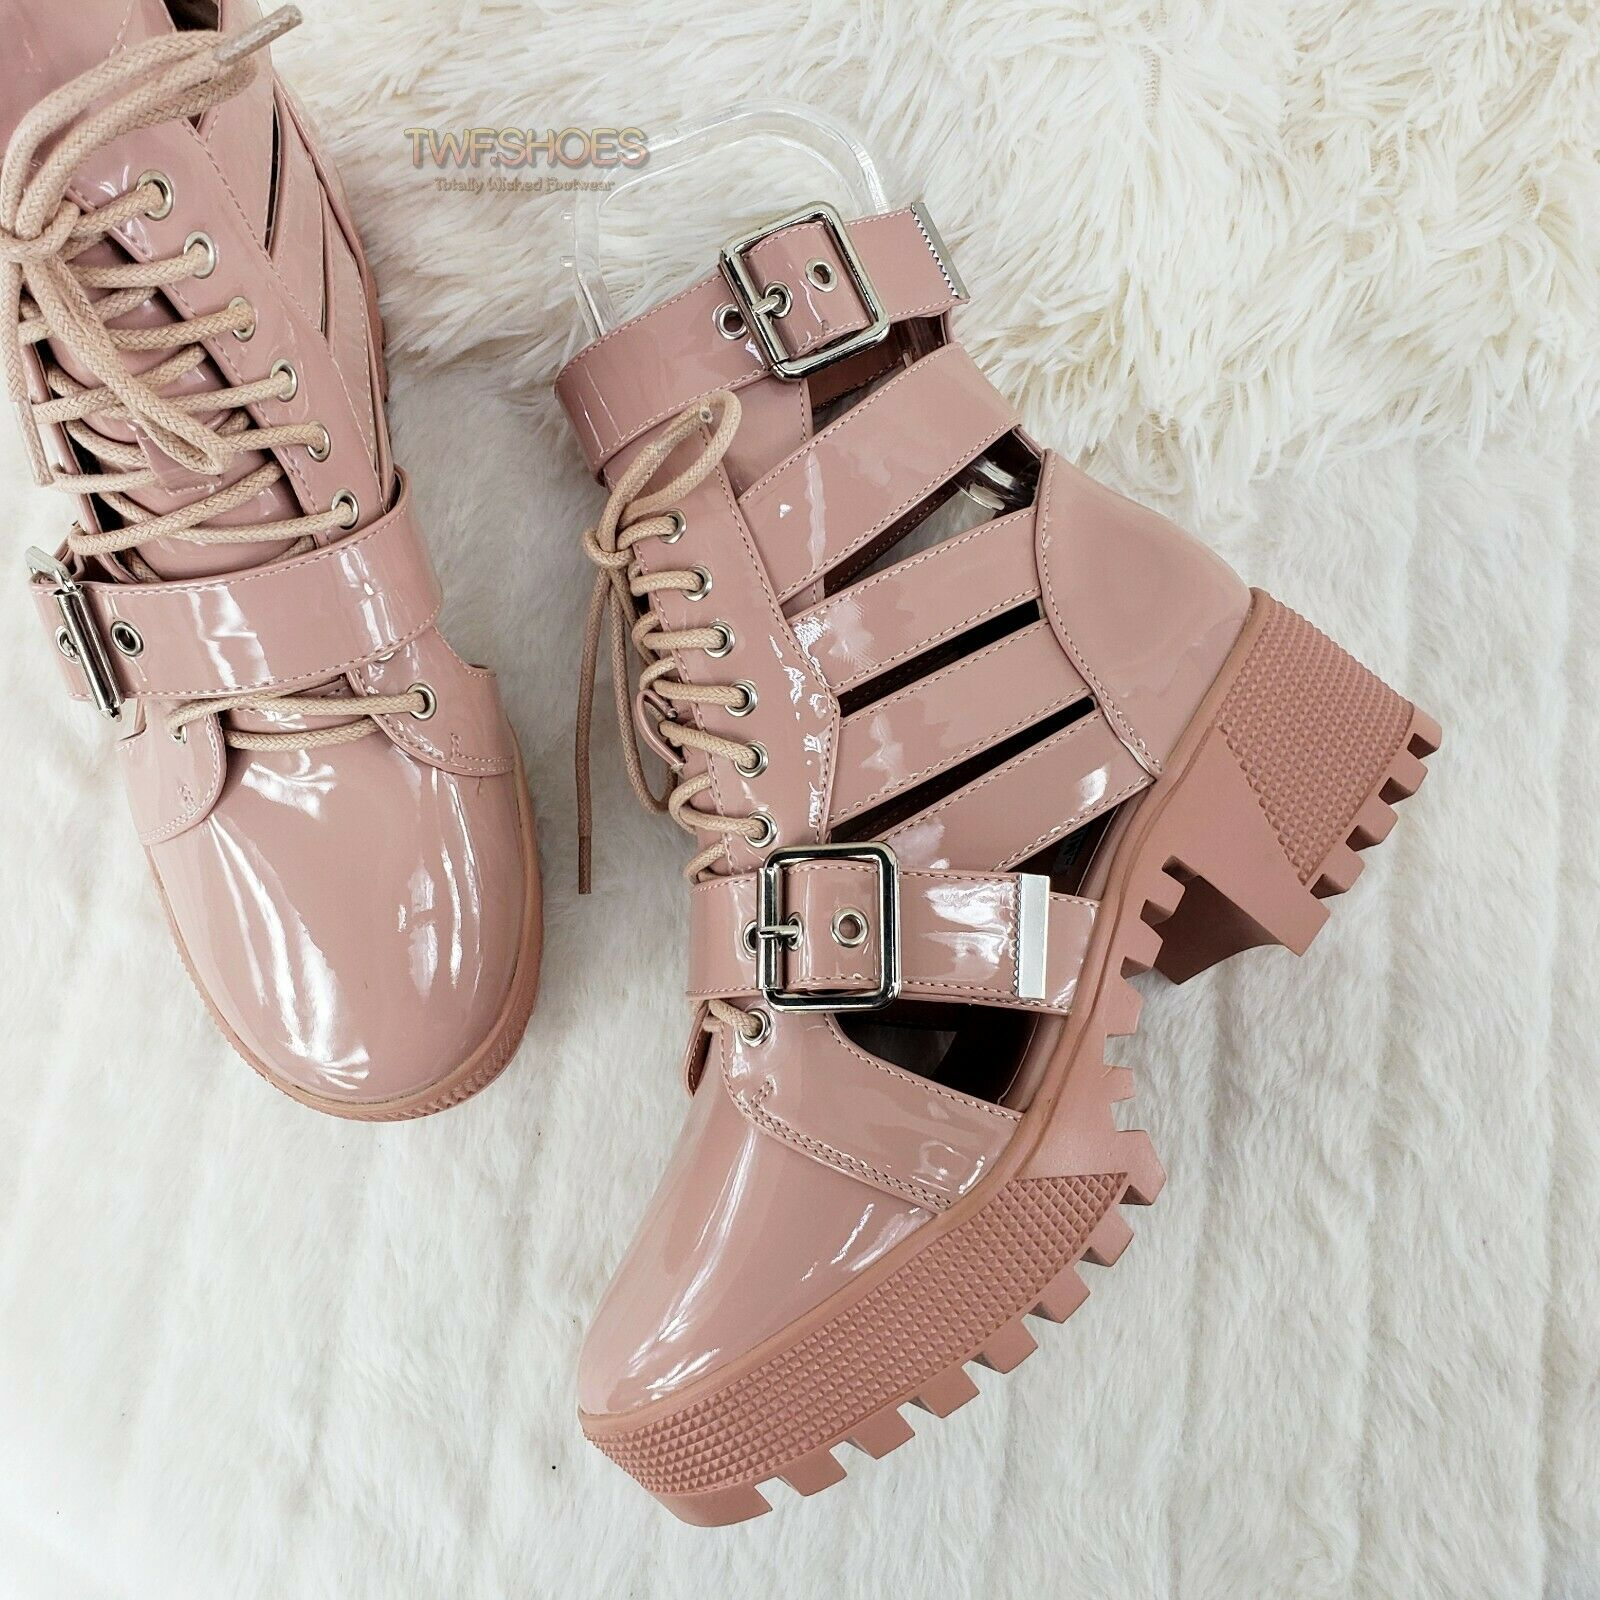 Image of CR Beyond Combat Platform Cut Out Ankle Boots Sandals Size 6-11 Nude